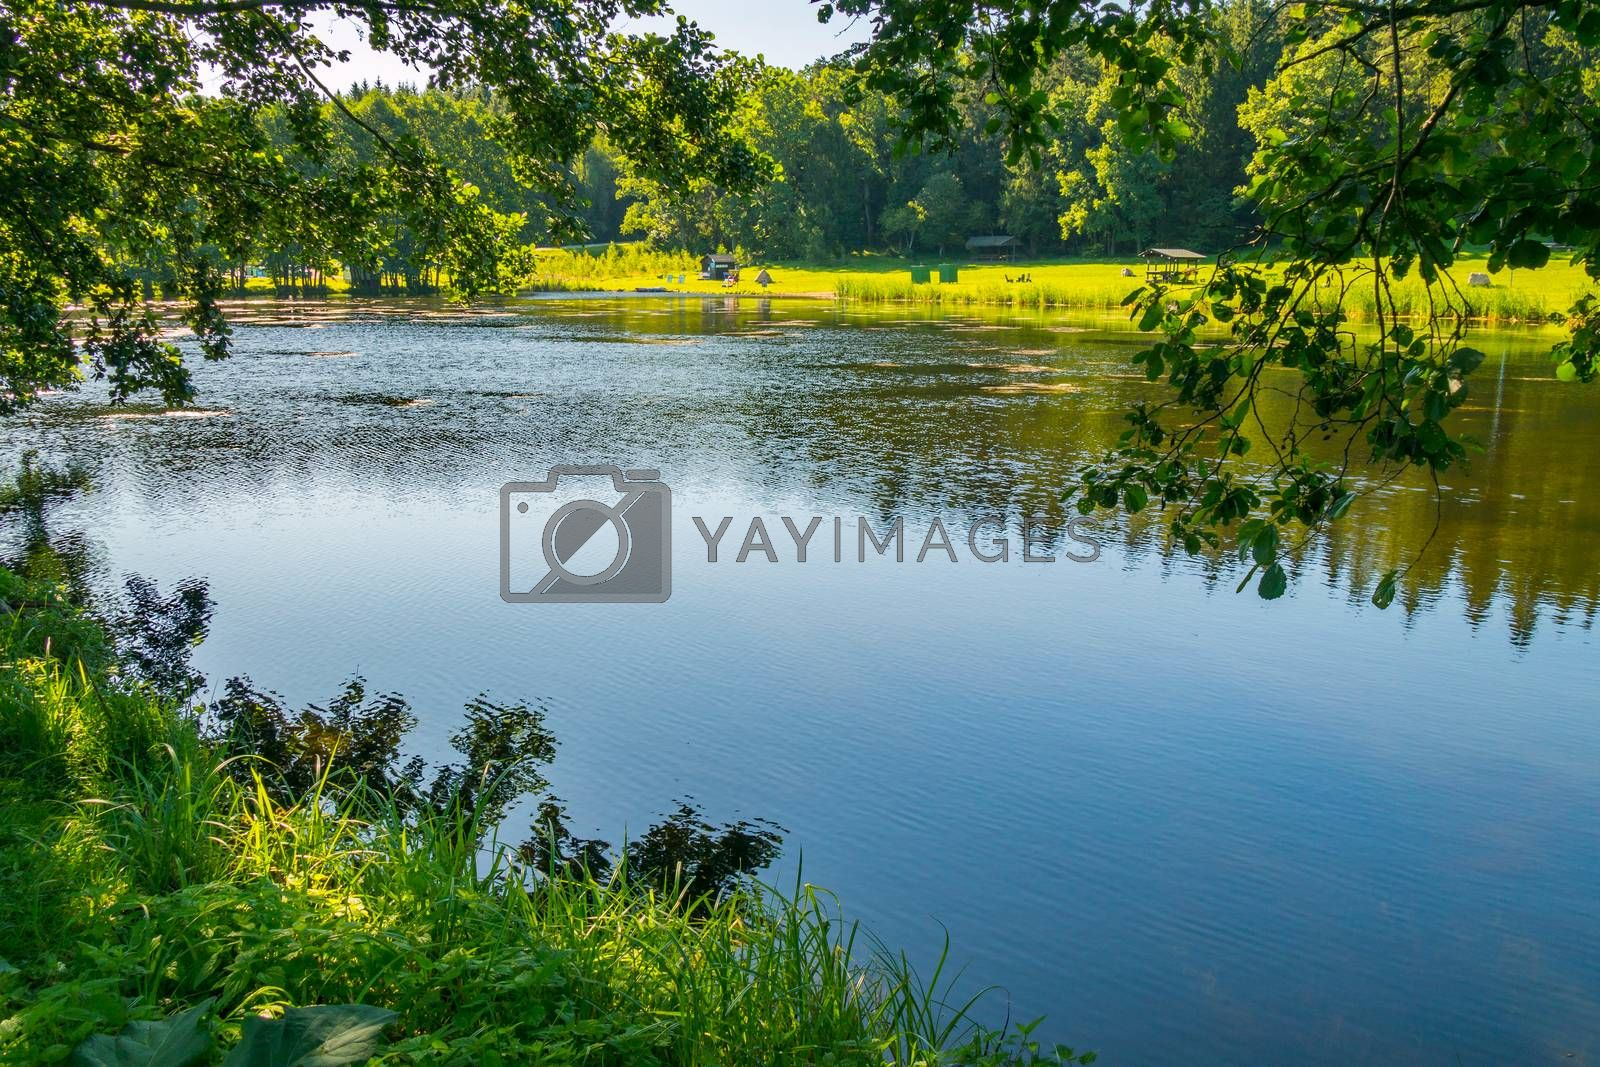 beautiful lake with grassy shores in the park. place for recreation and fishing